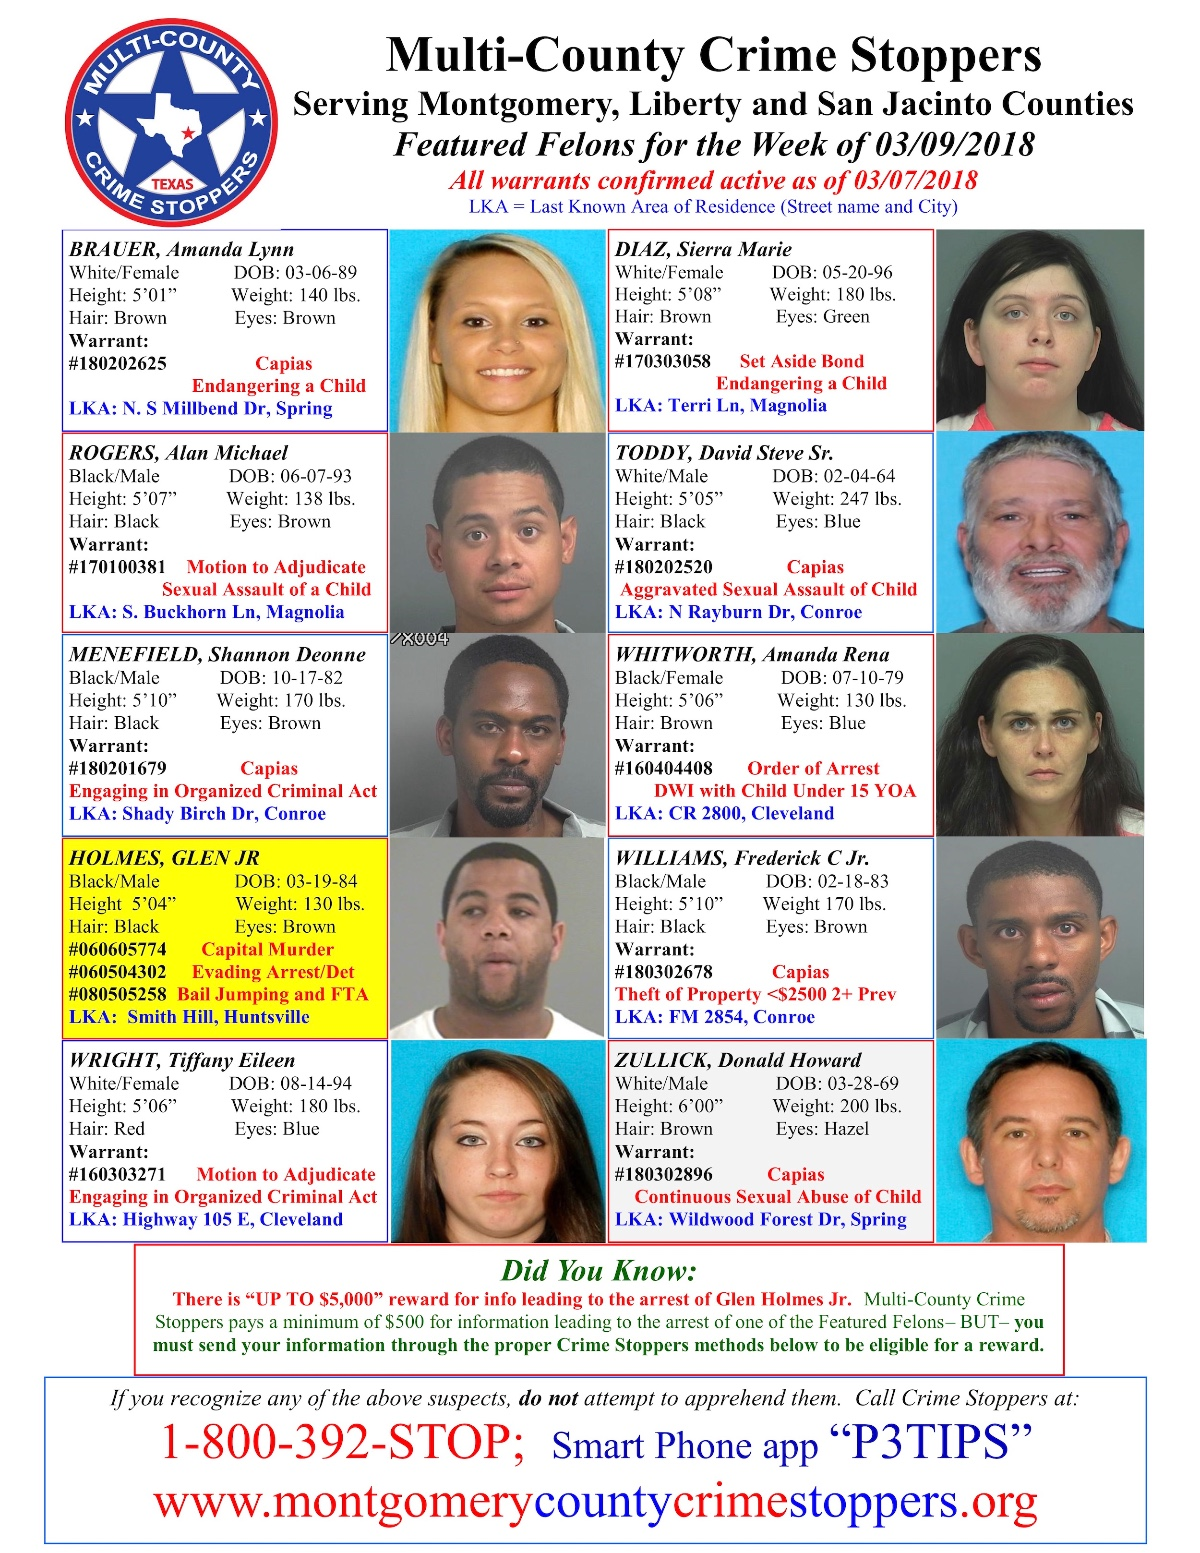 Featured Felons 3/9/18